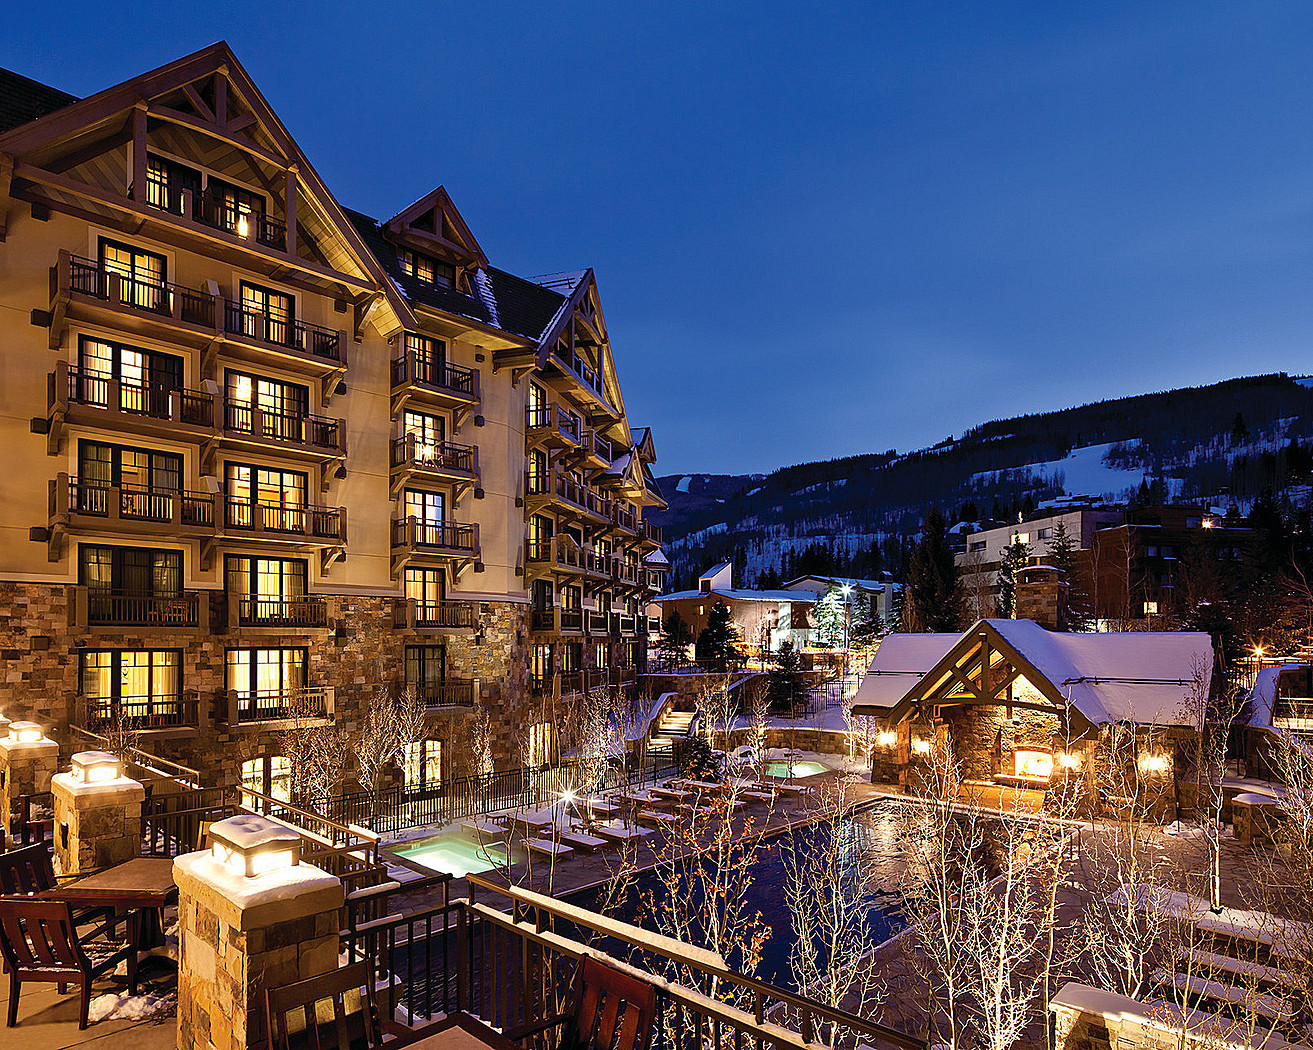 vail ski resorts essay View essay - vail ski resort case from aac 3202 at cuny baruch vail ski resort case study vail ski resort uses 4 systems that helps run the resort the first system.